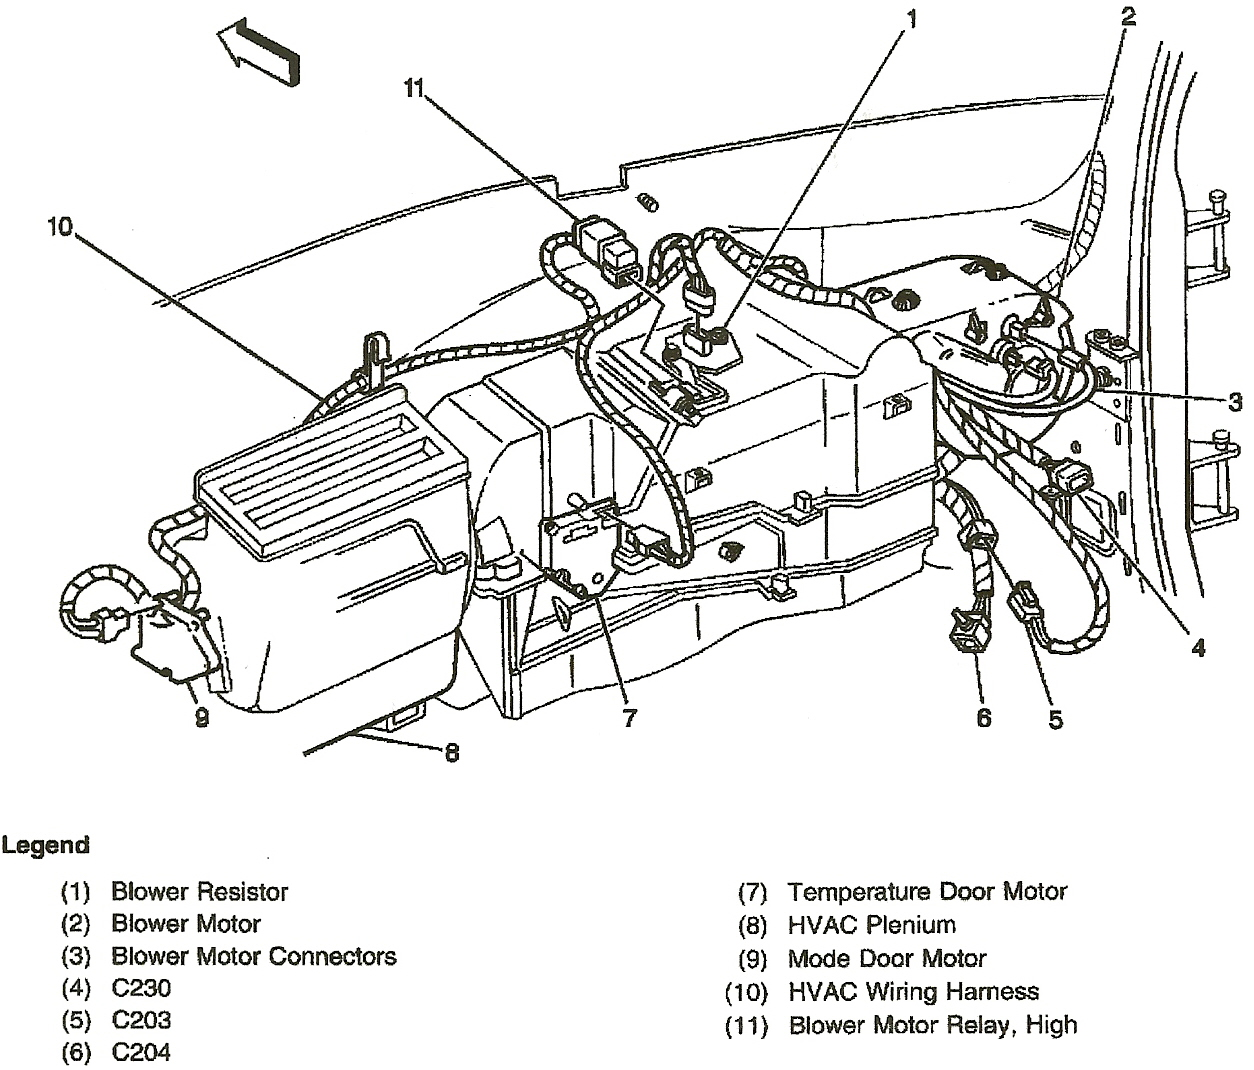 1999 Chevy Suburban Trailer Wiring Diagram from my.prostreetonline.com